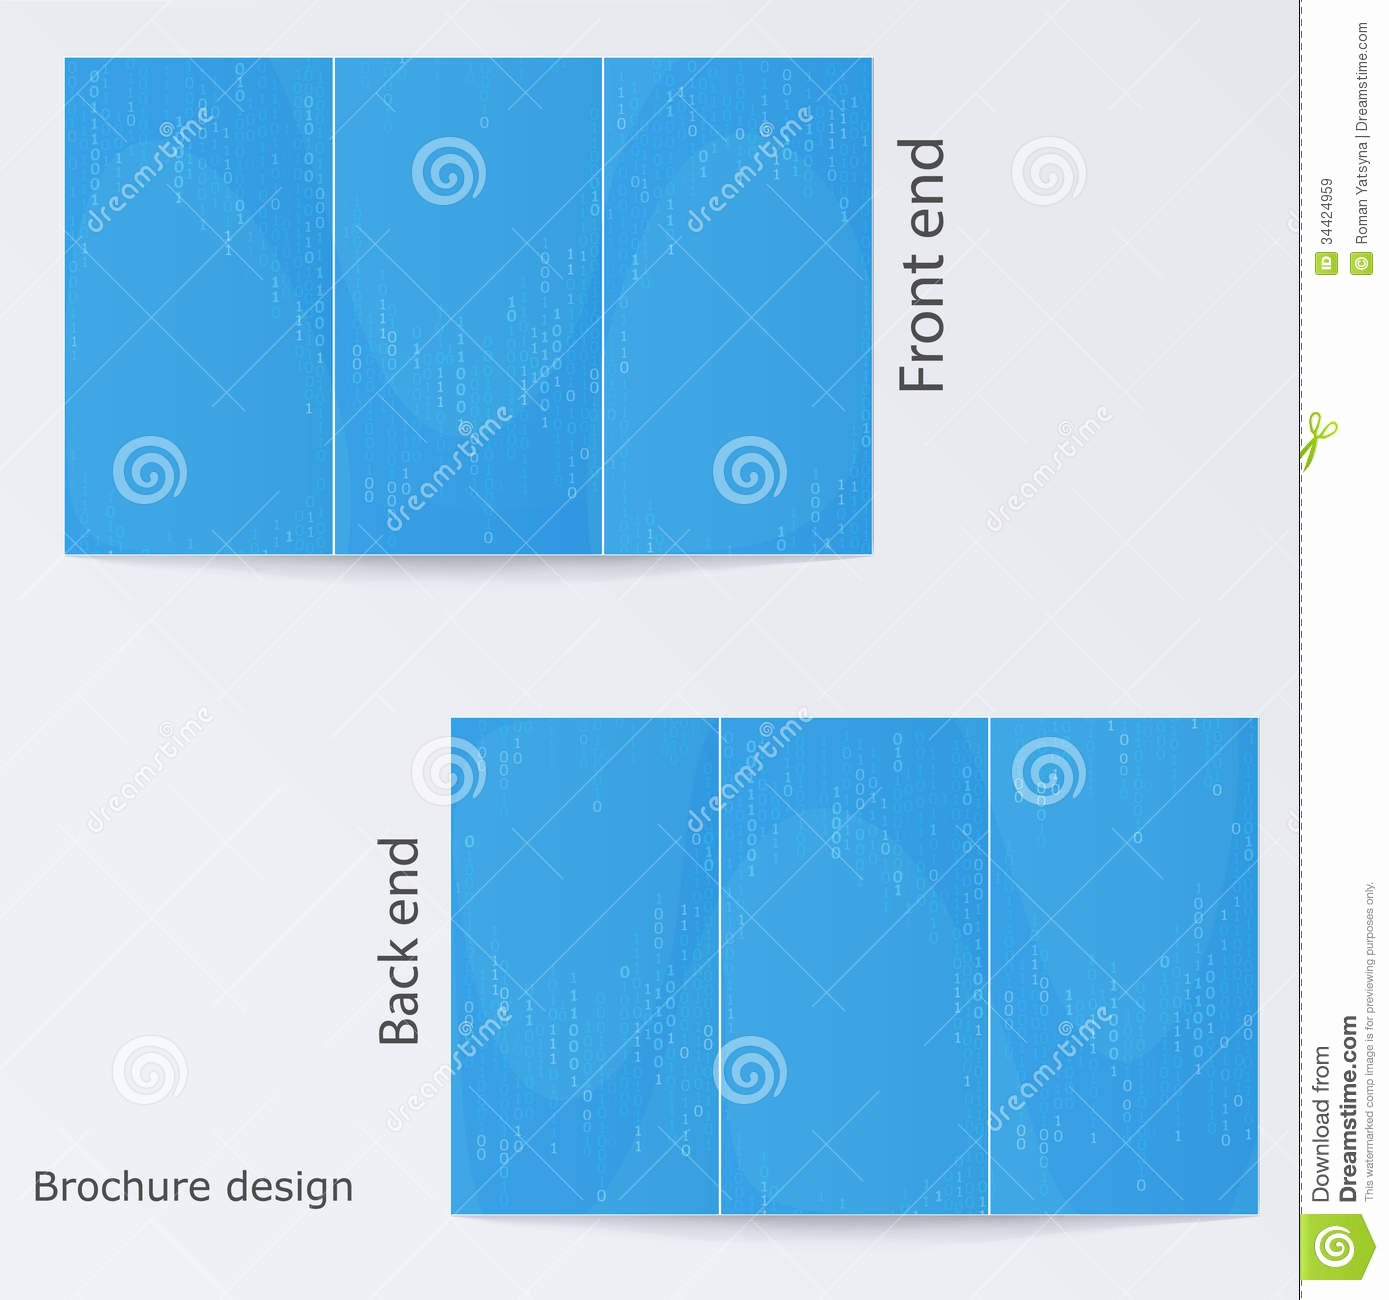 Blue Brochure Template Design Royalty Free Stock